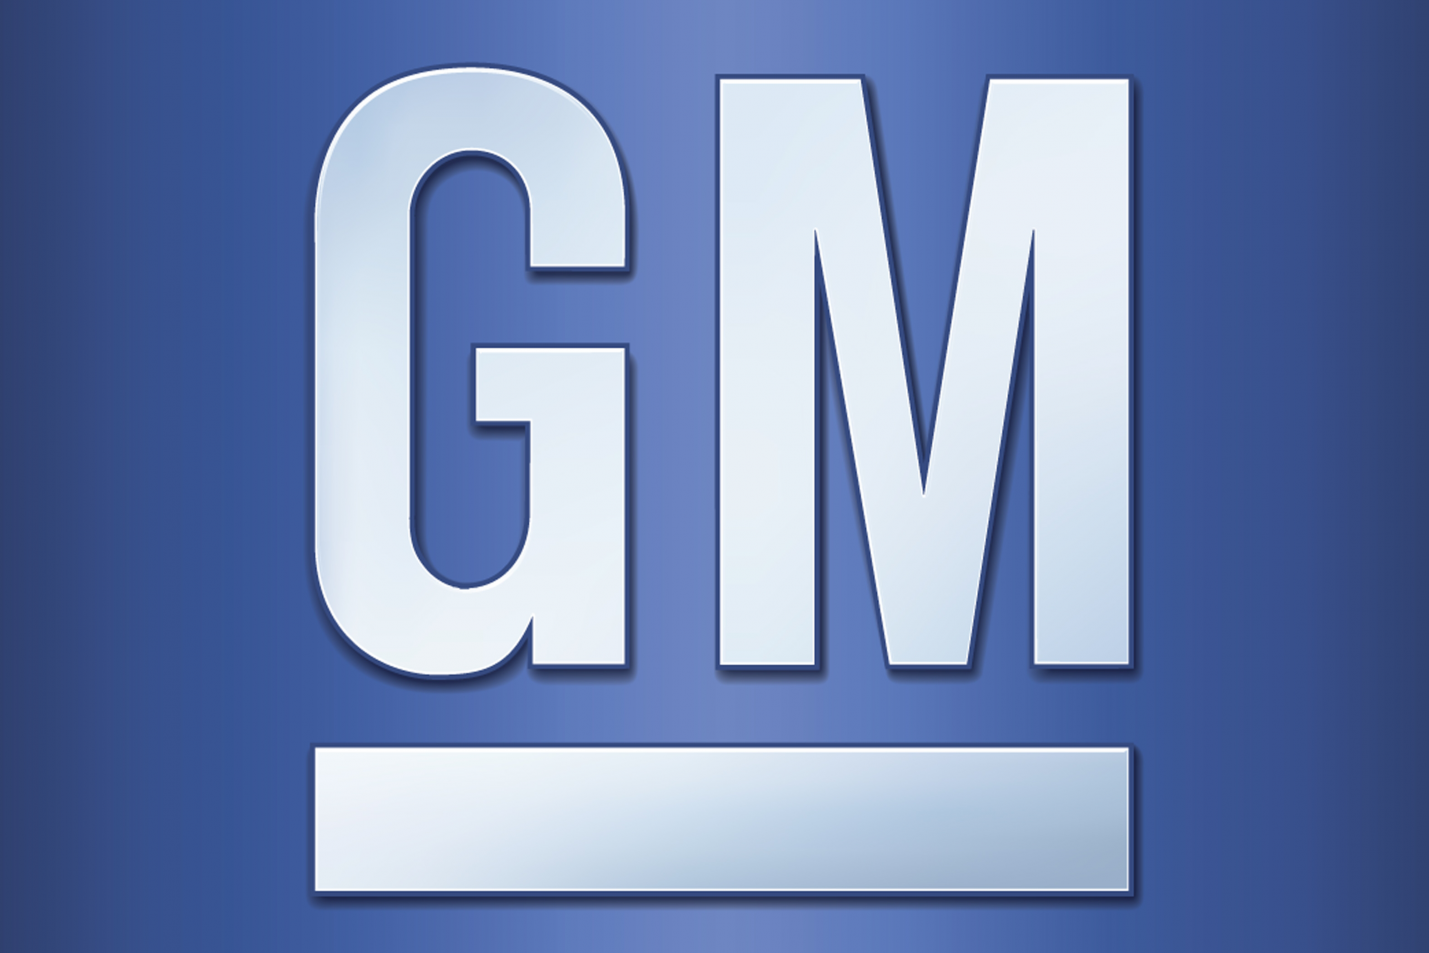 taken from: http://www.carlogos.org/Car-Logos/General-Motors-logo.html